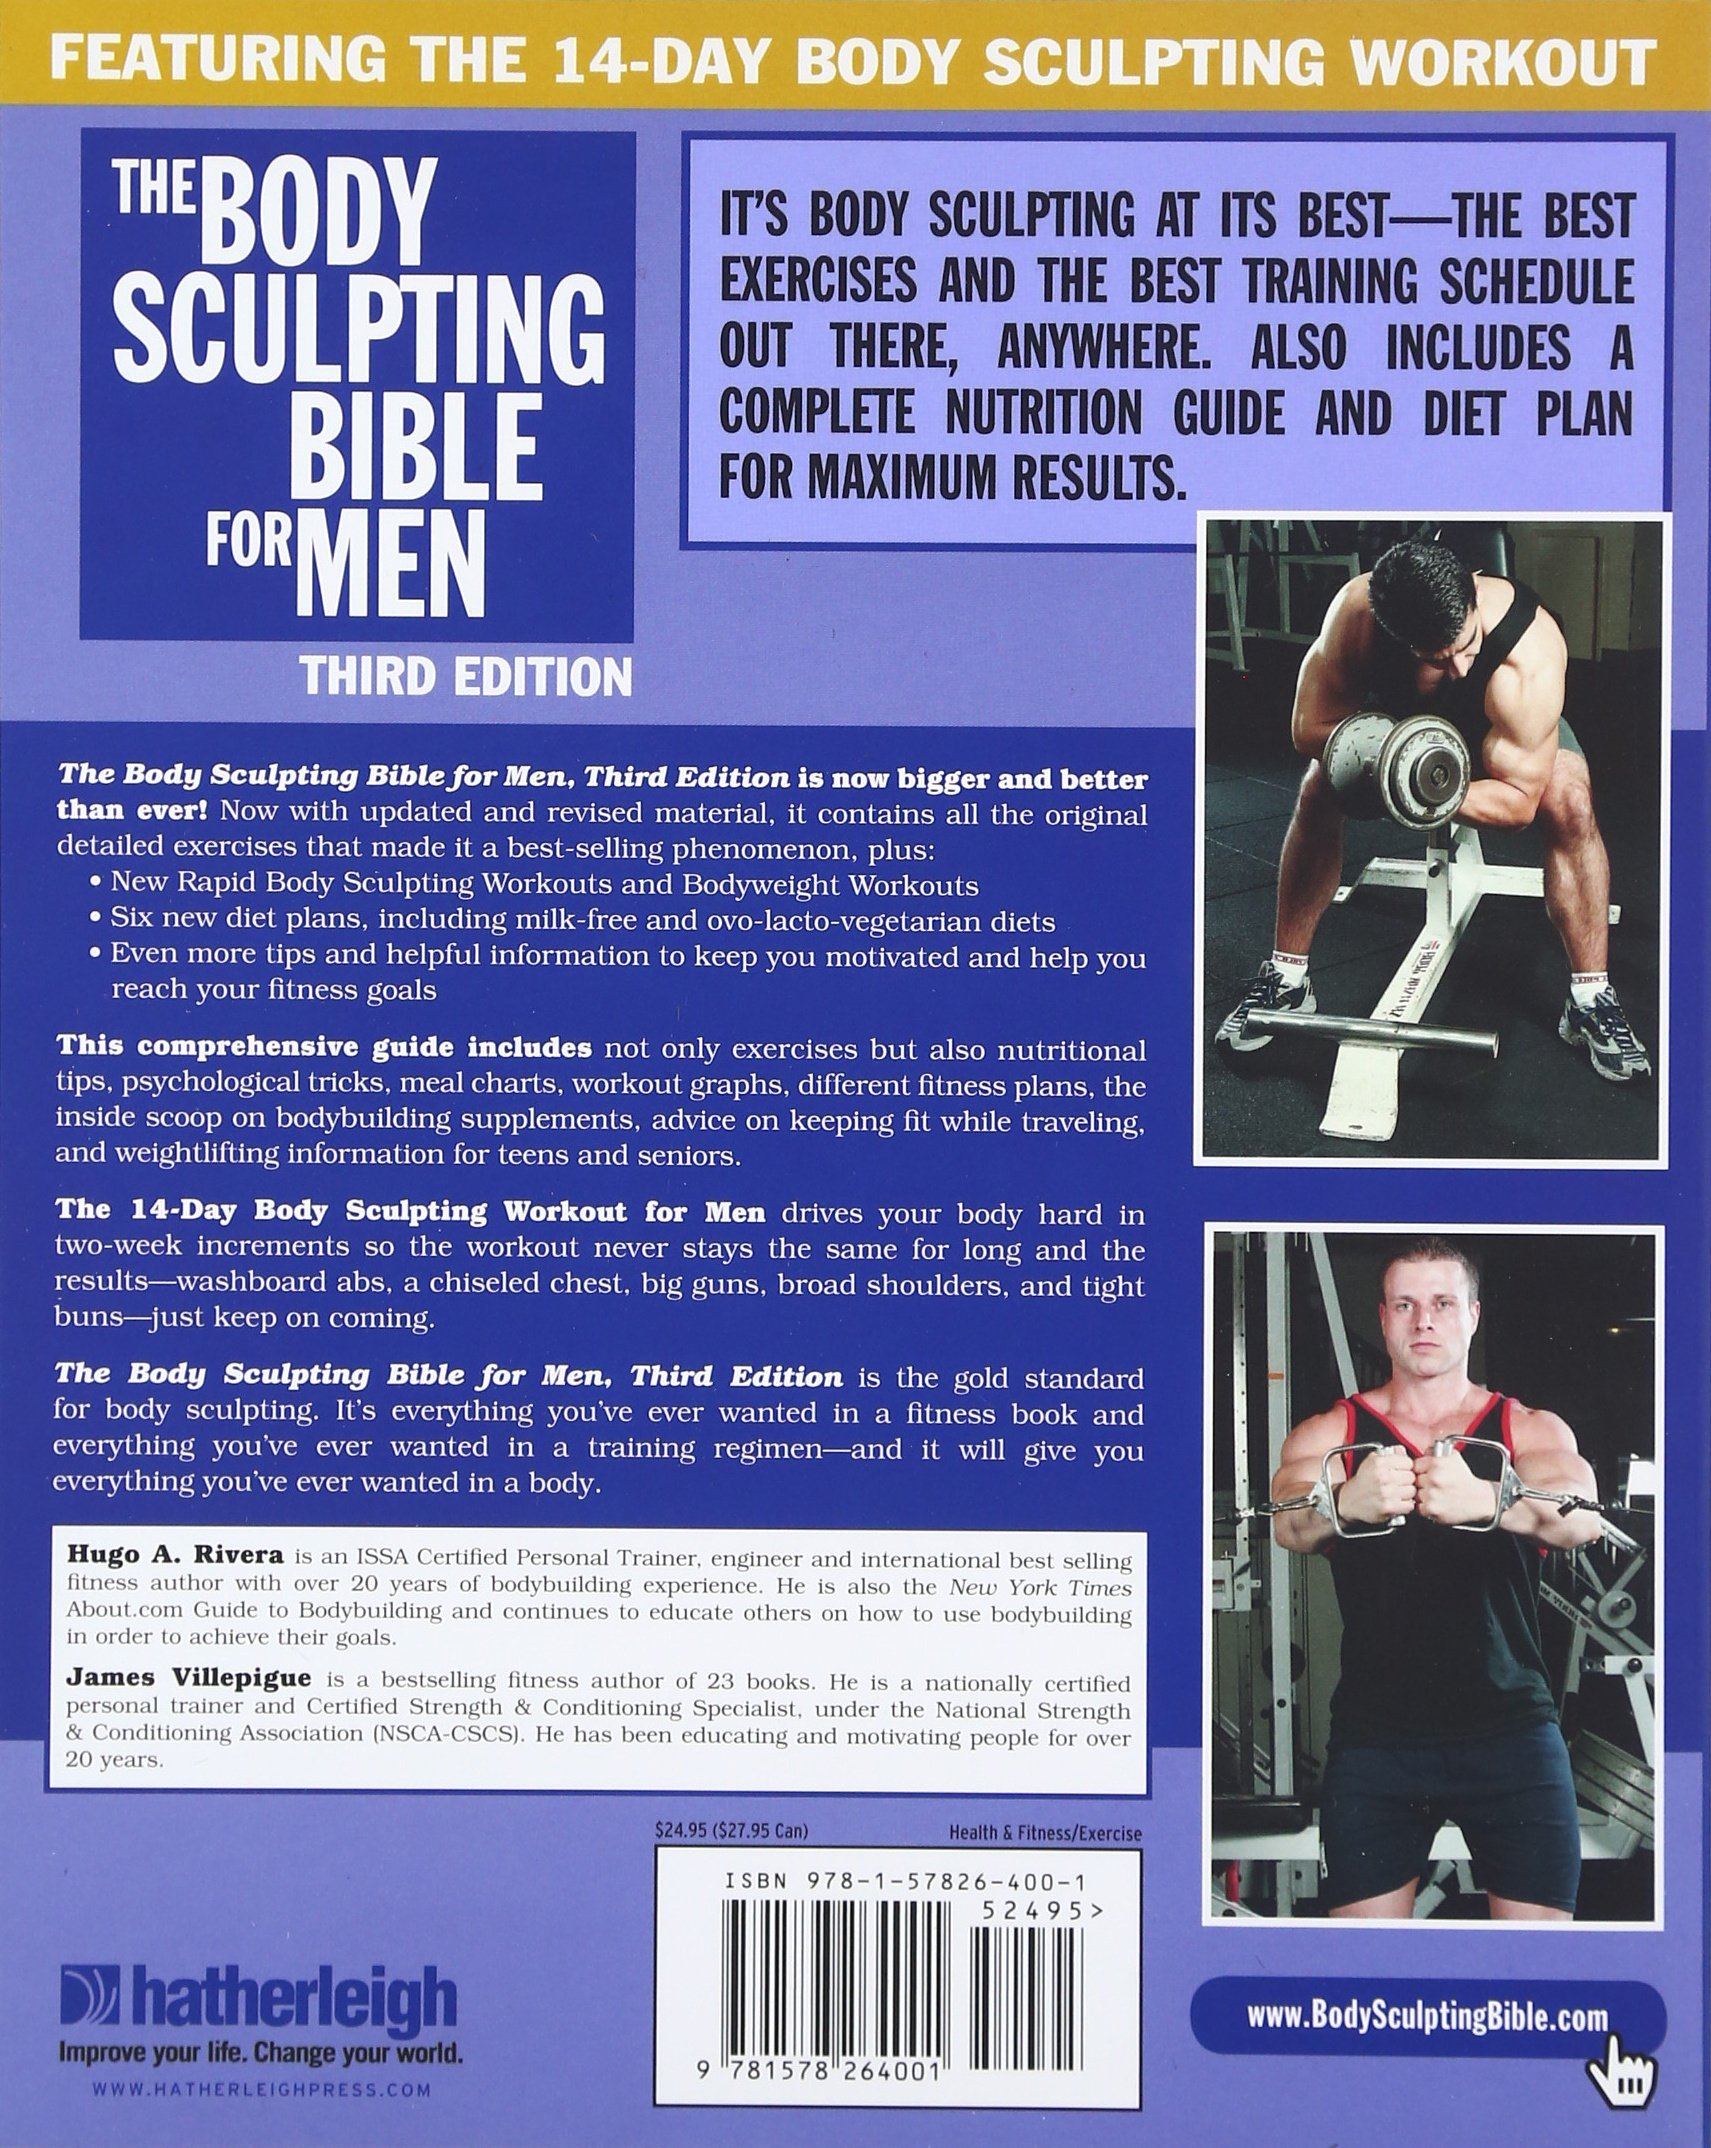 The body sculpting bible for men third edition james villepigue the body sculpting bible for men third edition james villepigue hugo rivera 9781578264001 amazon books 1betcityfo Choice Image